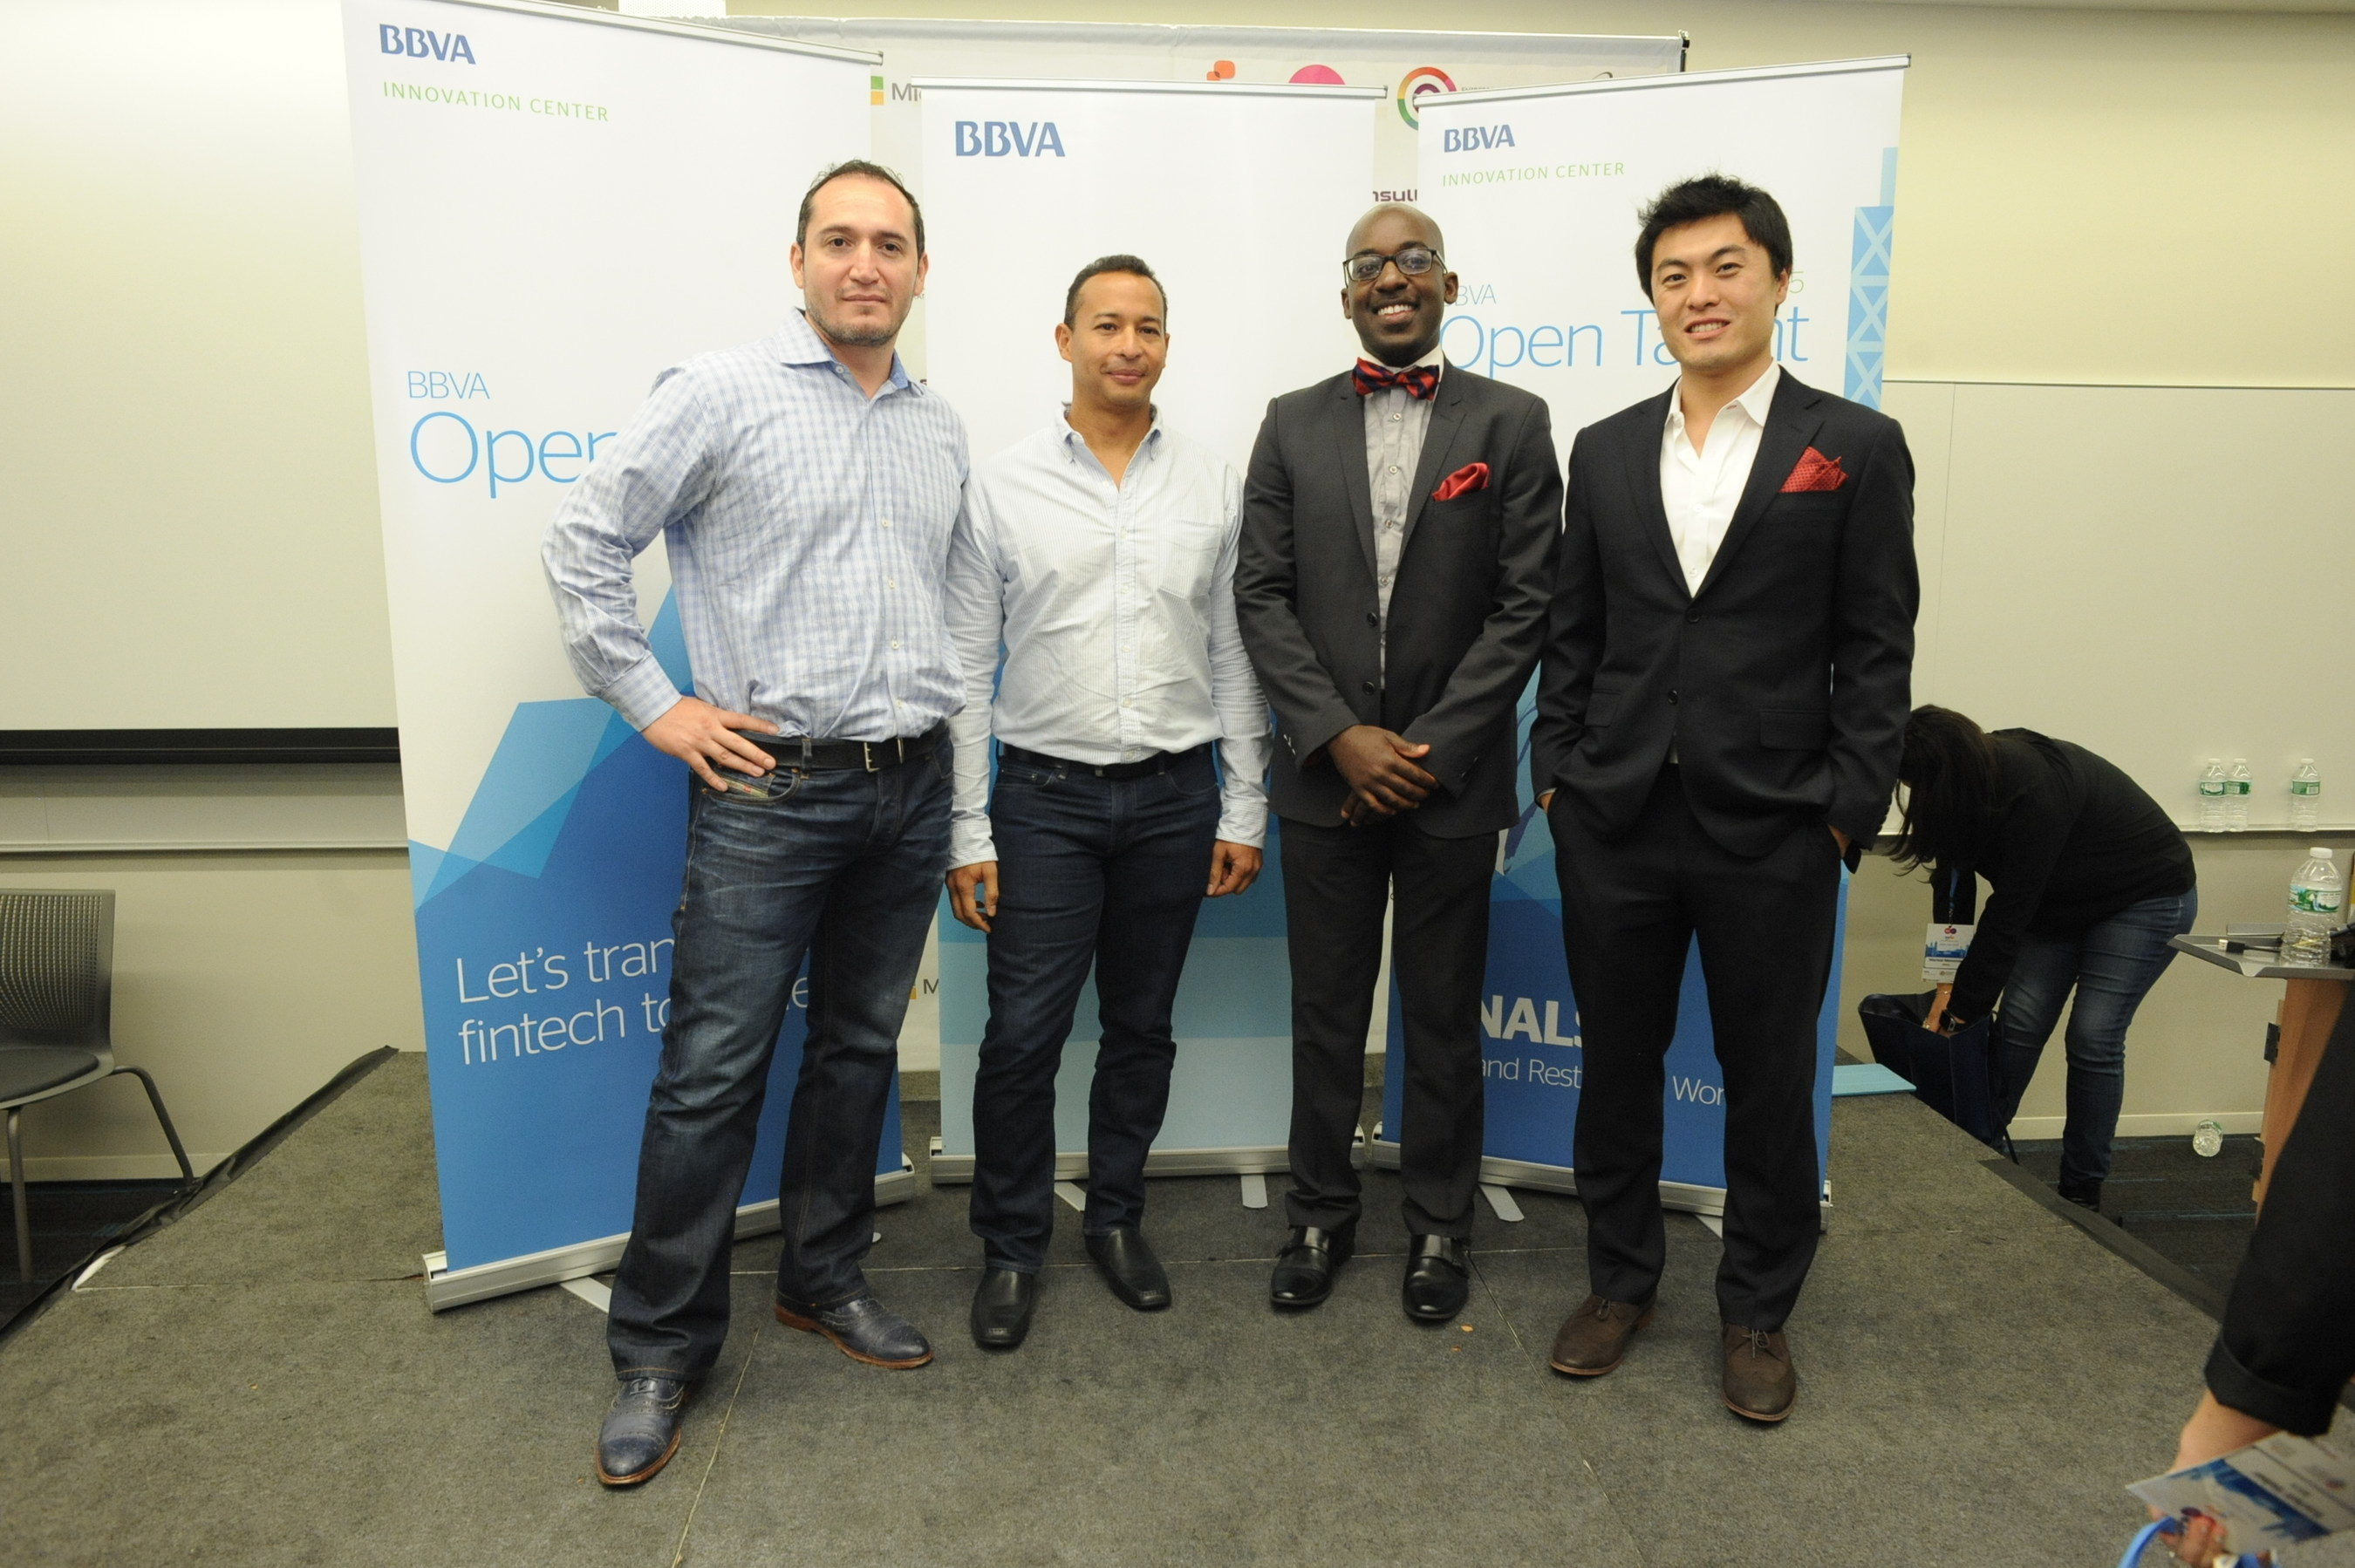 (l-r) LendingFront CEO and co-founder Jorge Sun, LendingFront CTO and co-founder Dario Vergara, ModernLend co-founder Kobina Ansah, ModernLend co-founder Shuo Zhang